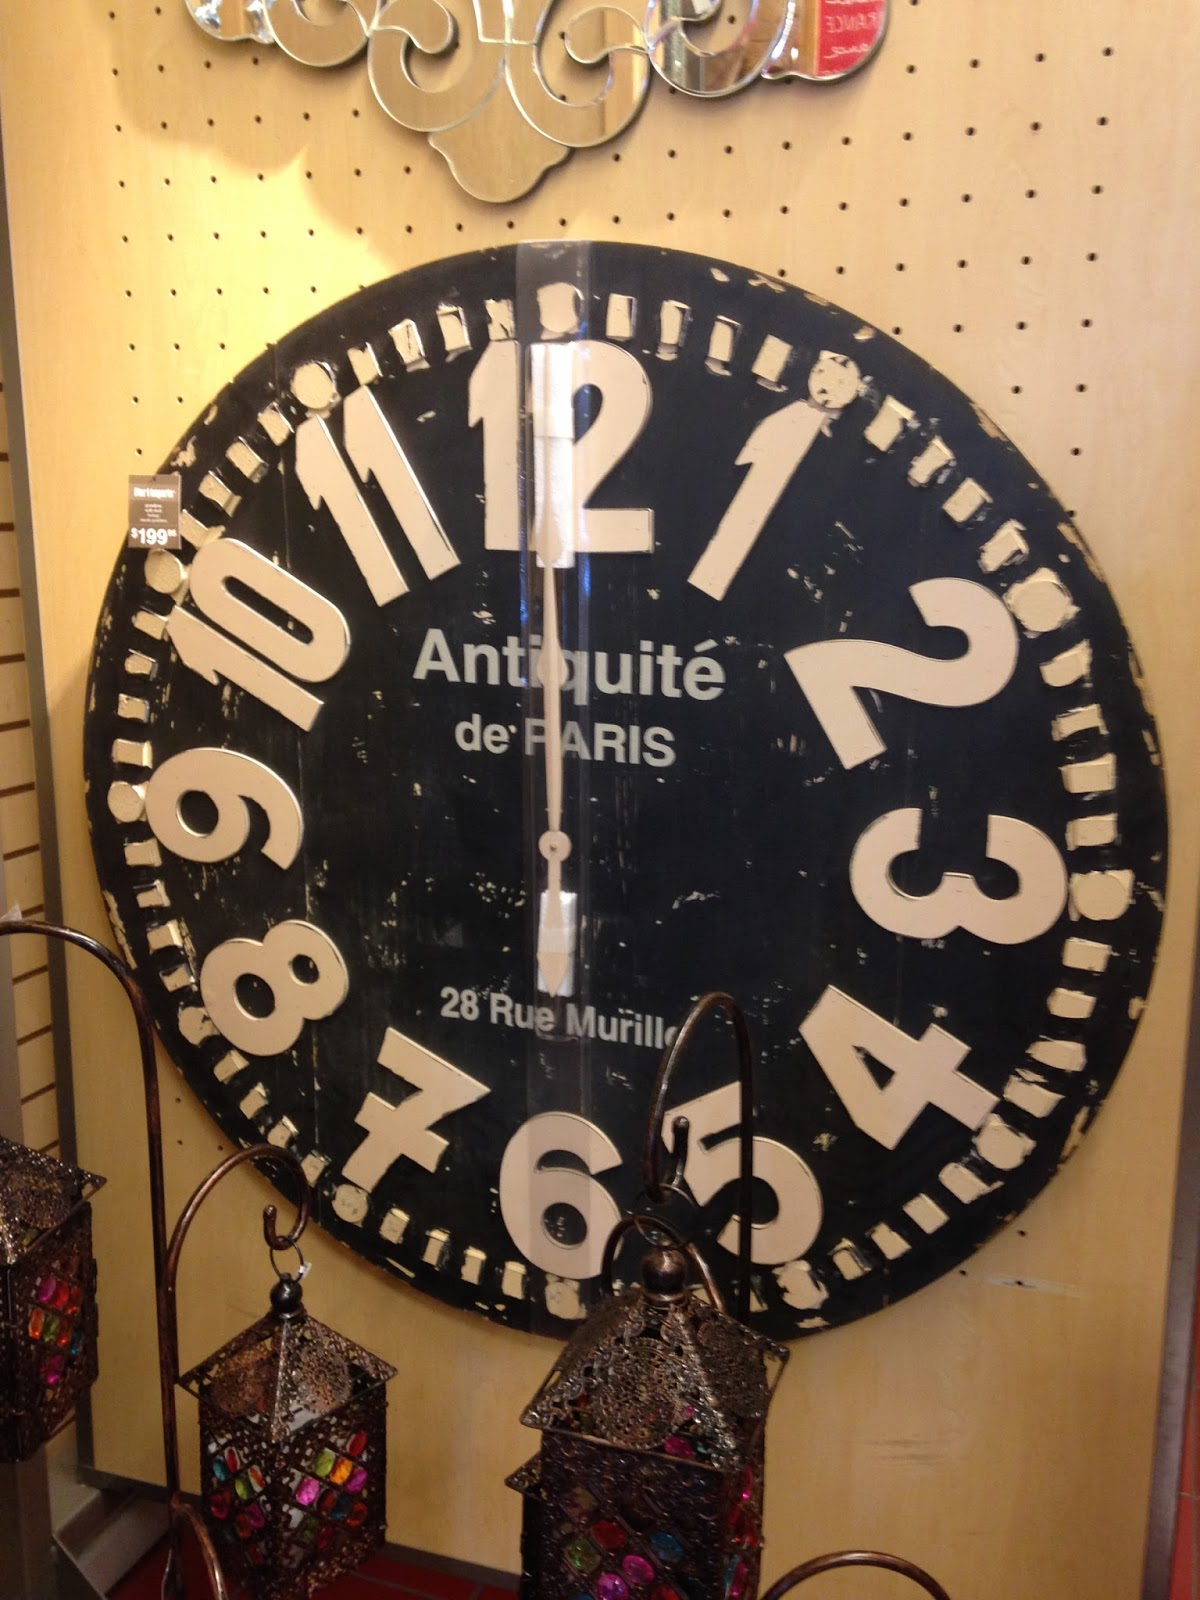 Lets go shopping pier one joann fabrics homegoods and hobby lets go shopping decor inspiration from pier one joann fabrics homegoods and wall clock amipublicfo Gallery